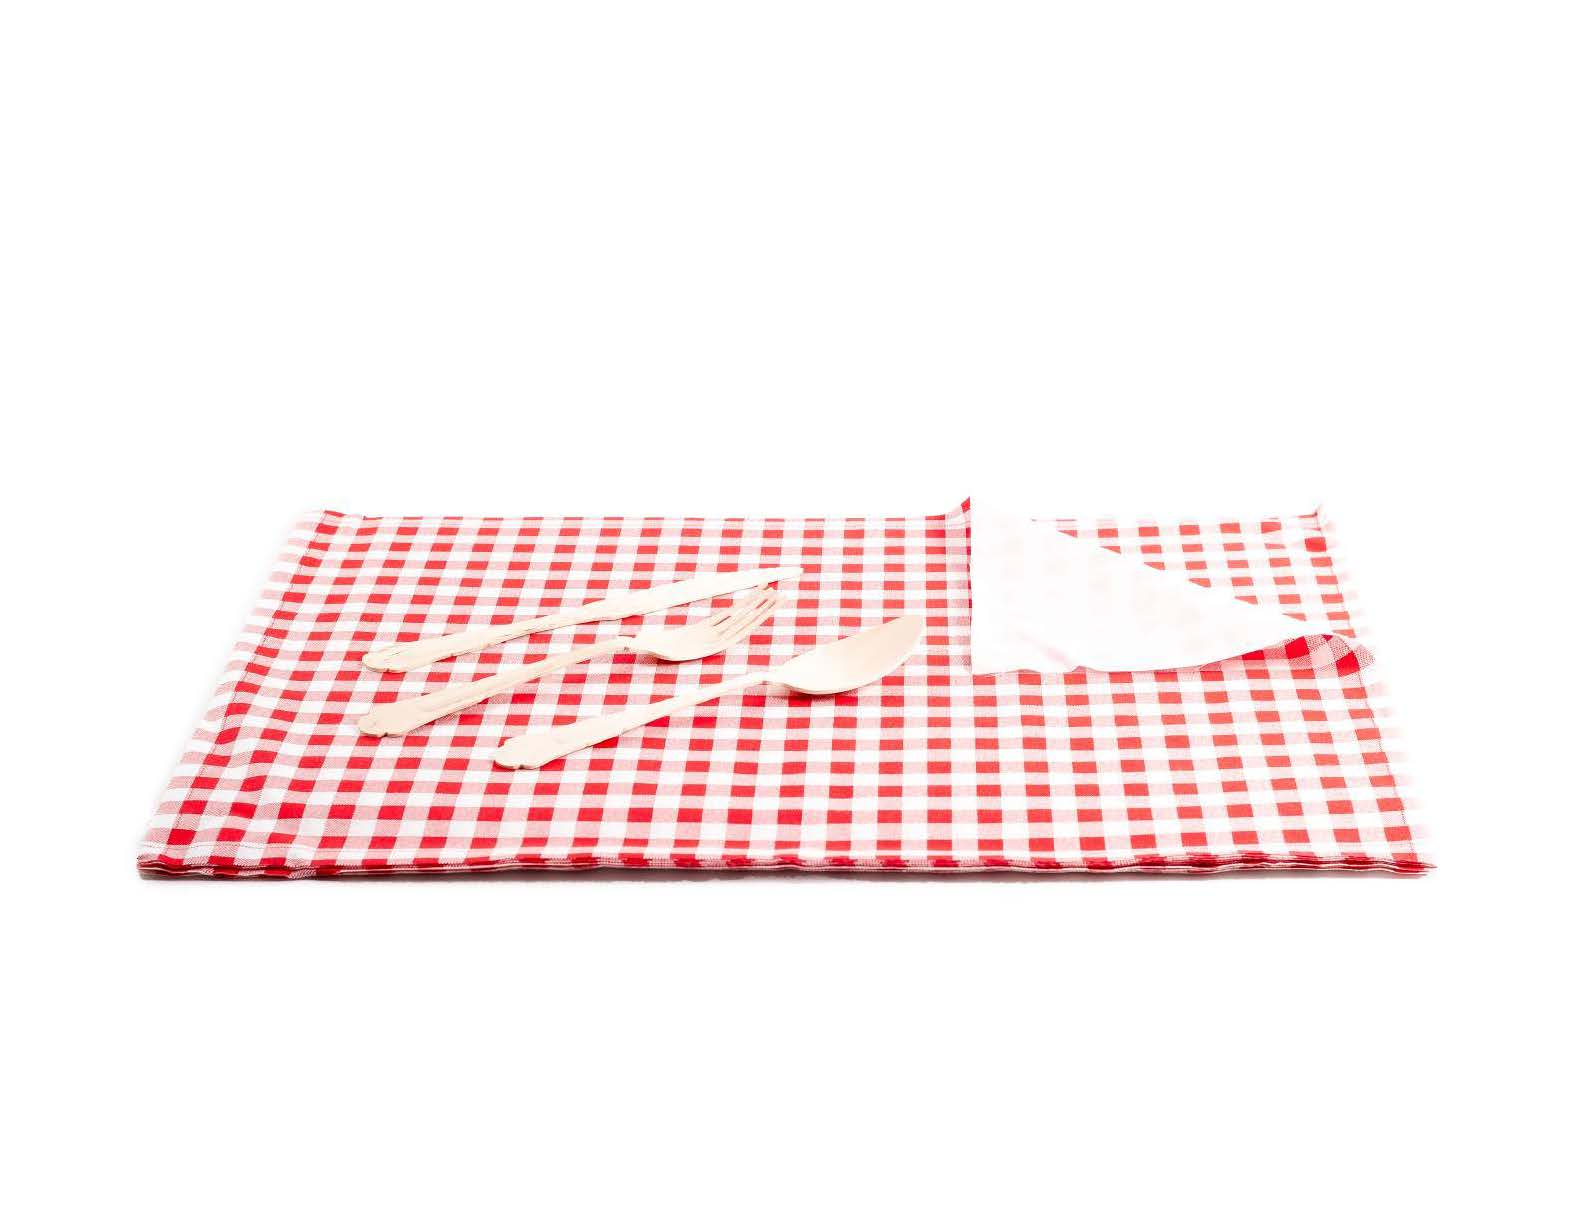 "Red Vichy Cotton Printed Placemat - 18.9"" x 12.6"" - 120 Units"